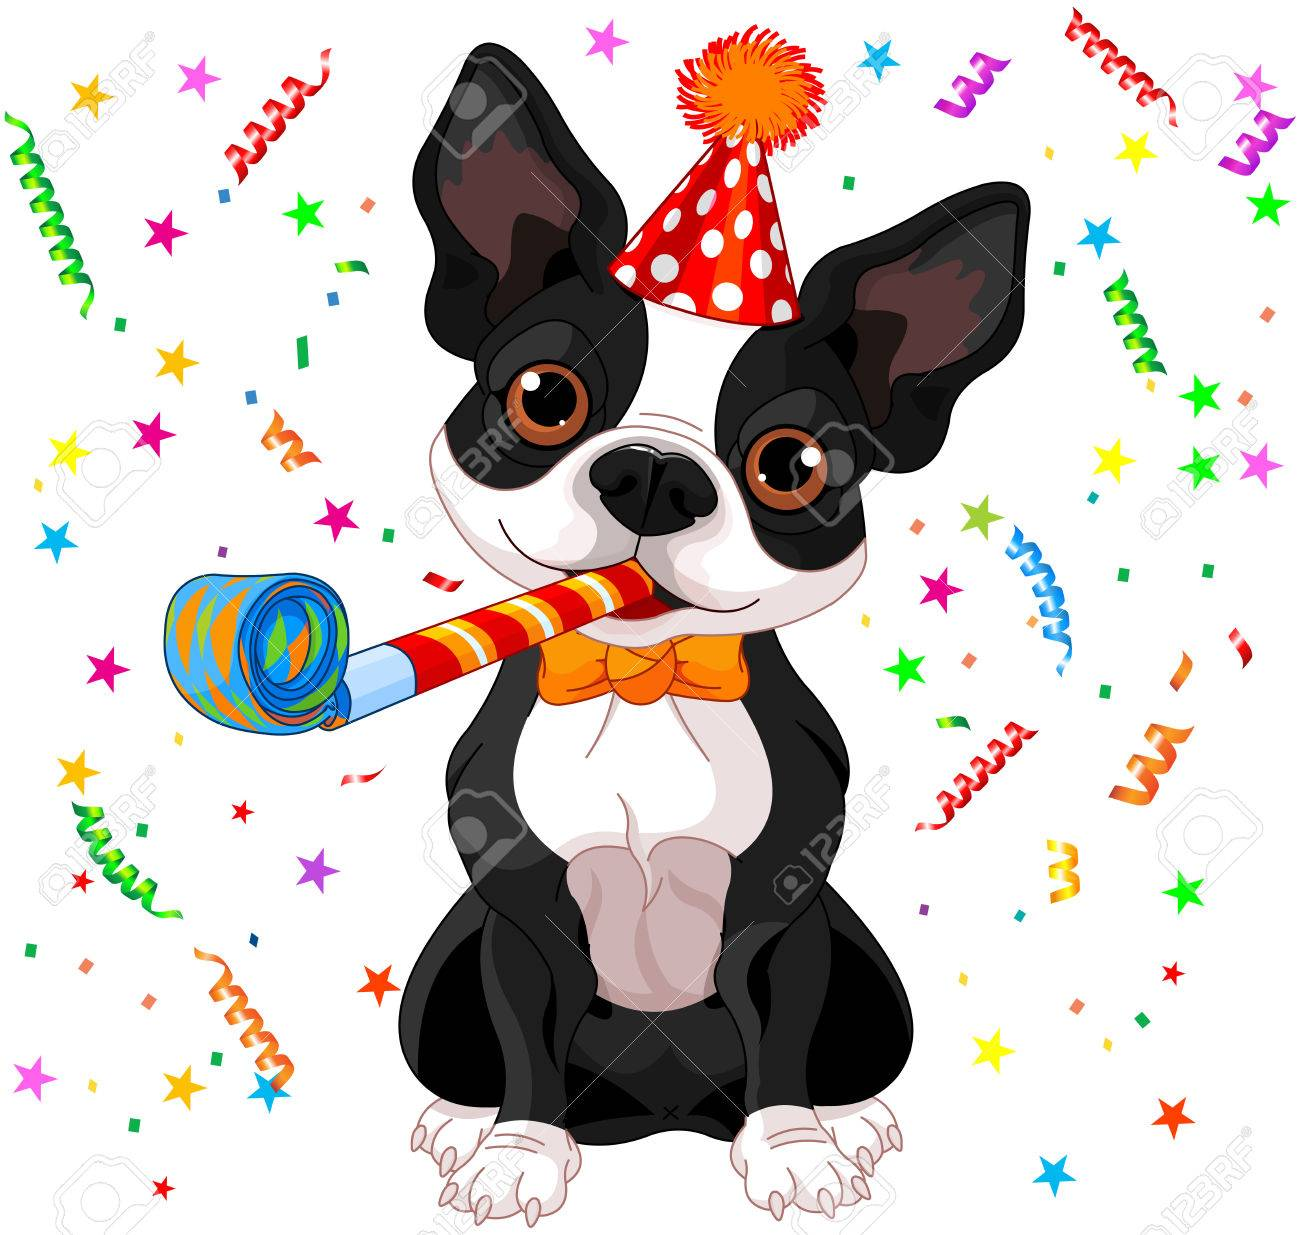 Le rappel - Page 5 35588778-illustration-of-cute-boston-terrier-celebrating